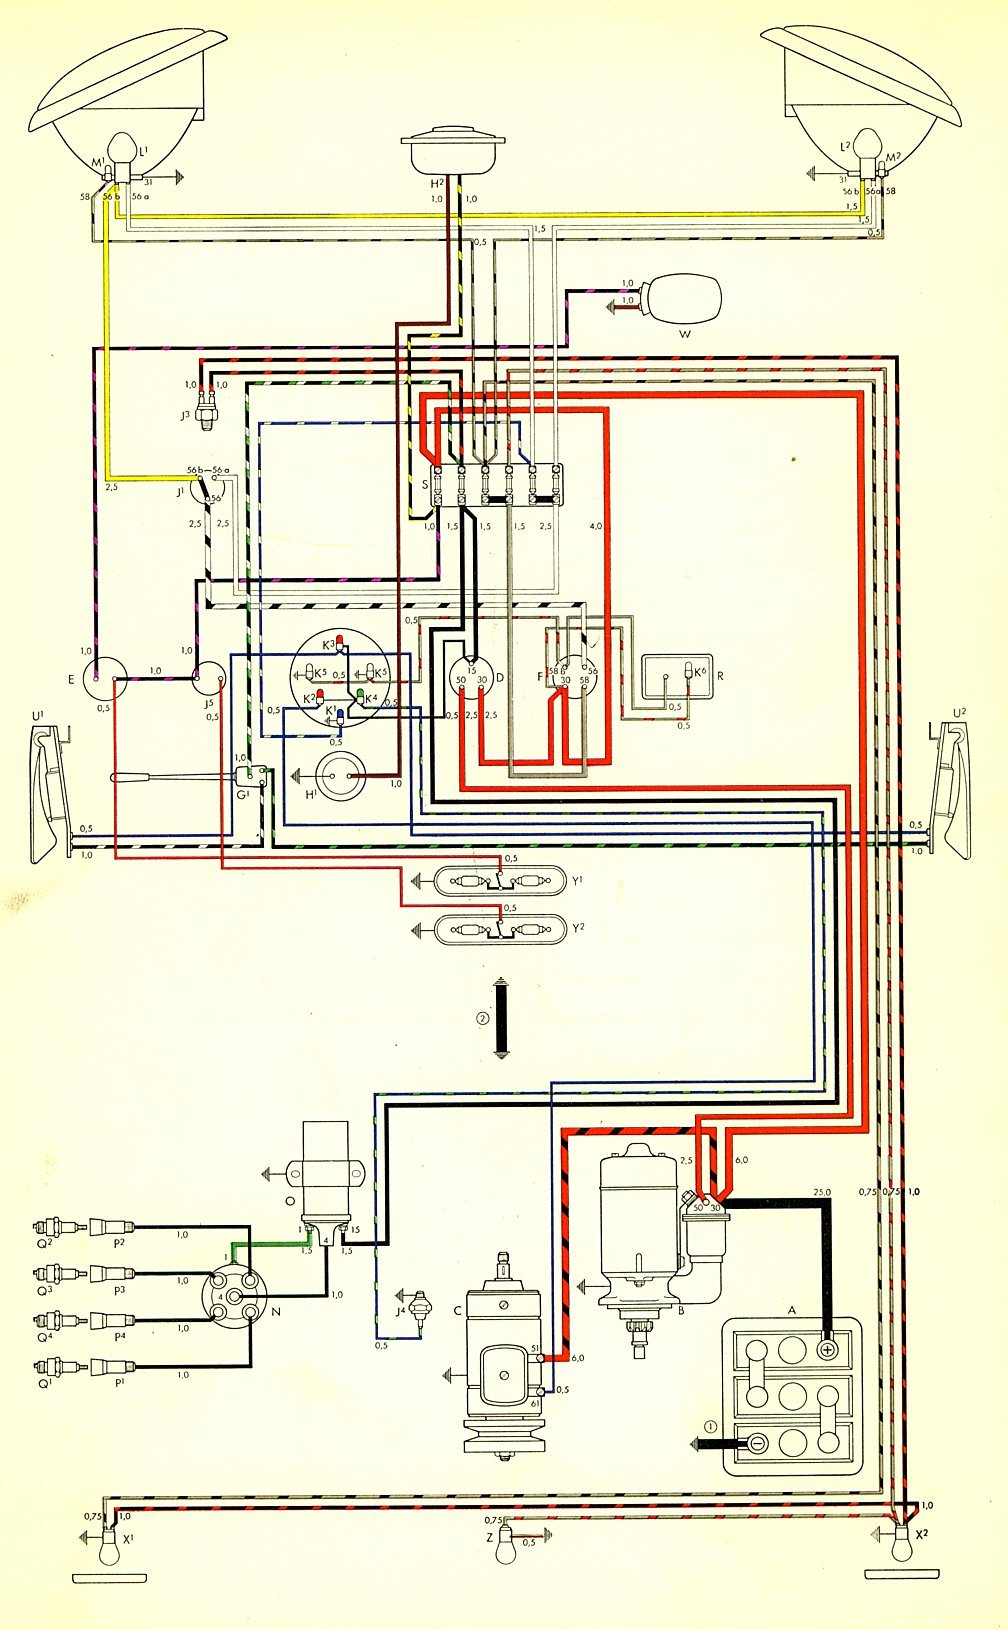 1980 Vanagon Wiring Diagram Archive Of Automotive 2009 Silverado With Afm Engine Thesamba Com Type 2 Diagrams Rh